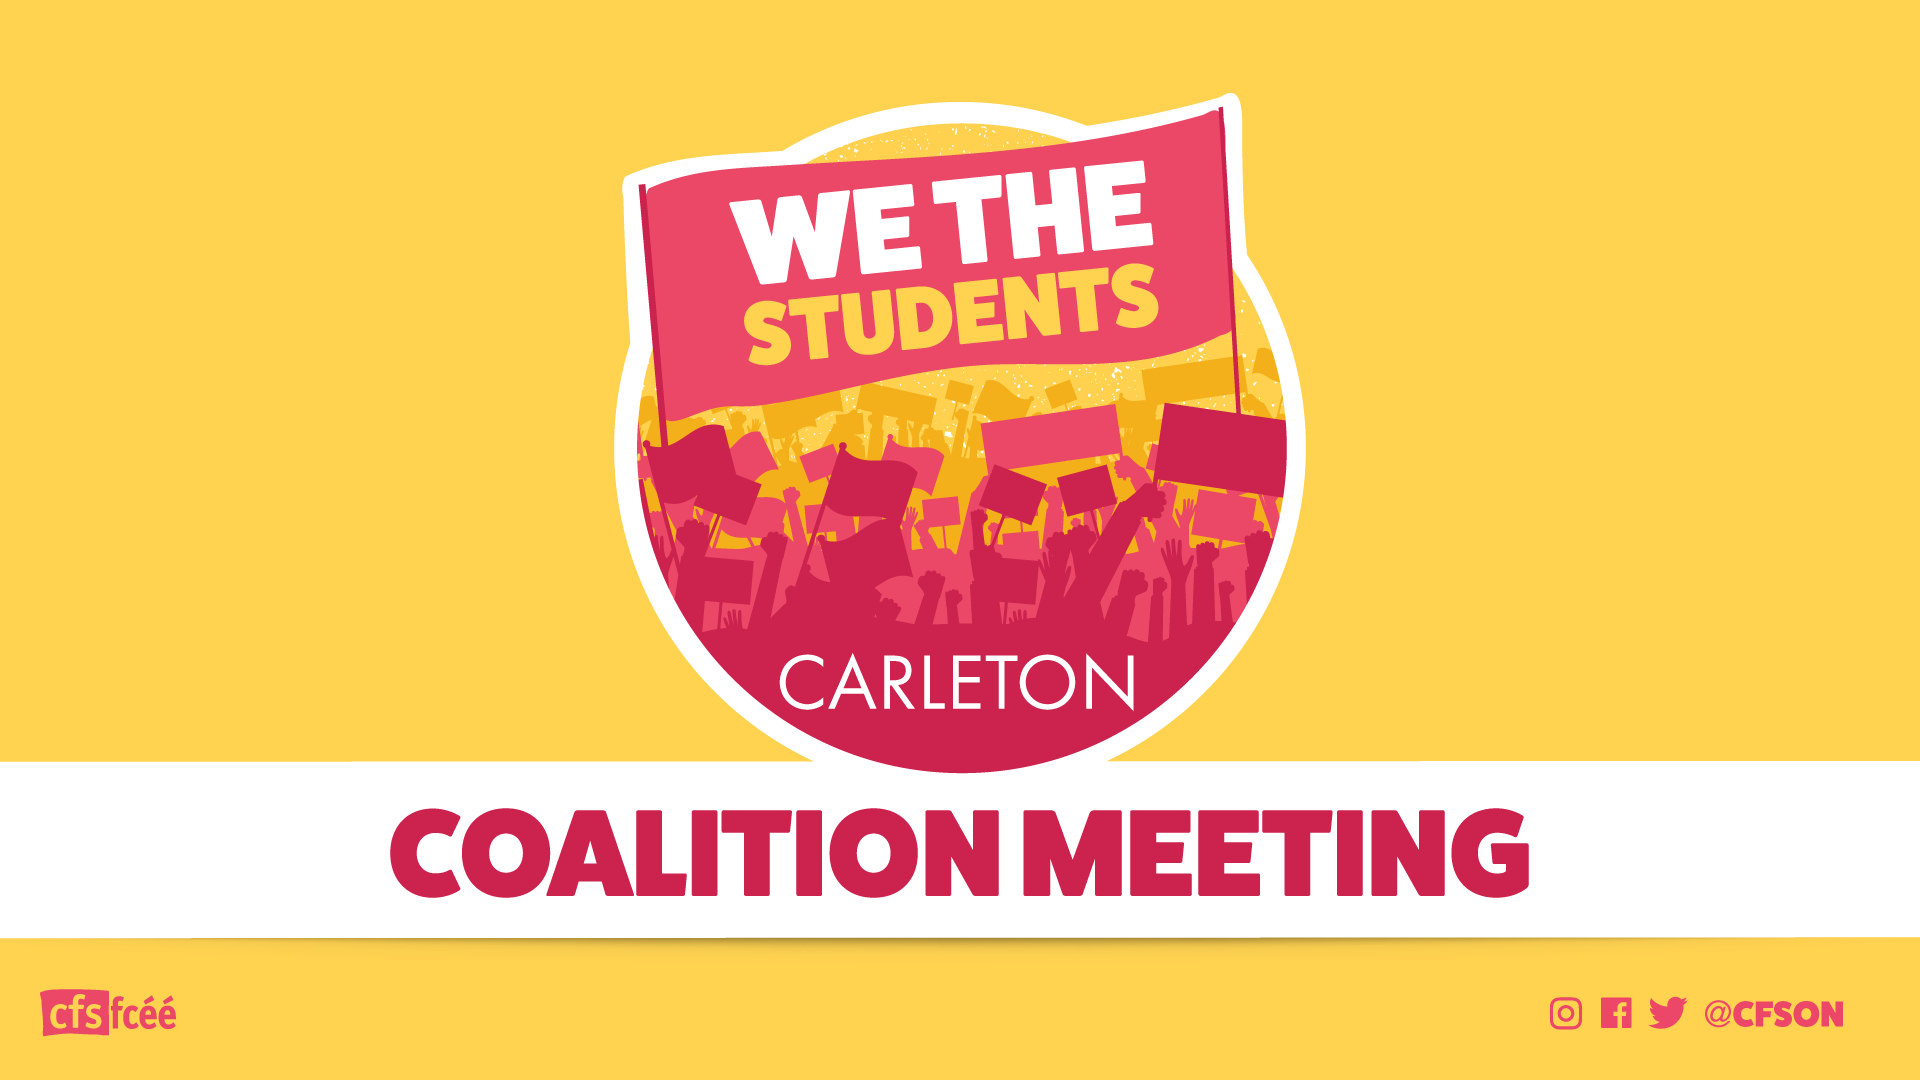 Carleton University Campus Coalition Meeting: March 14th